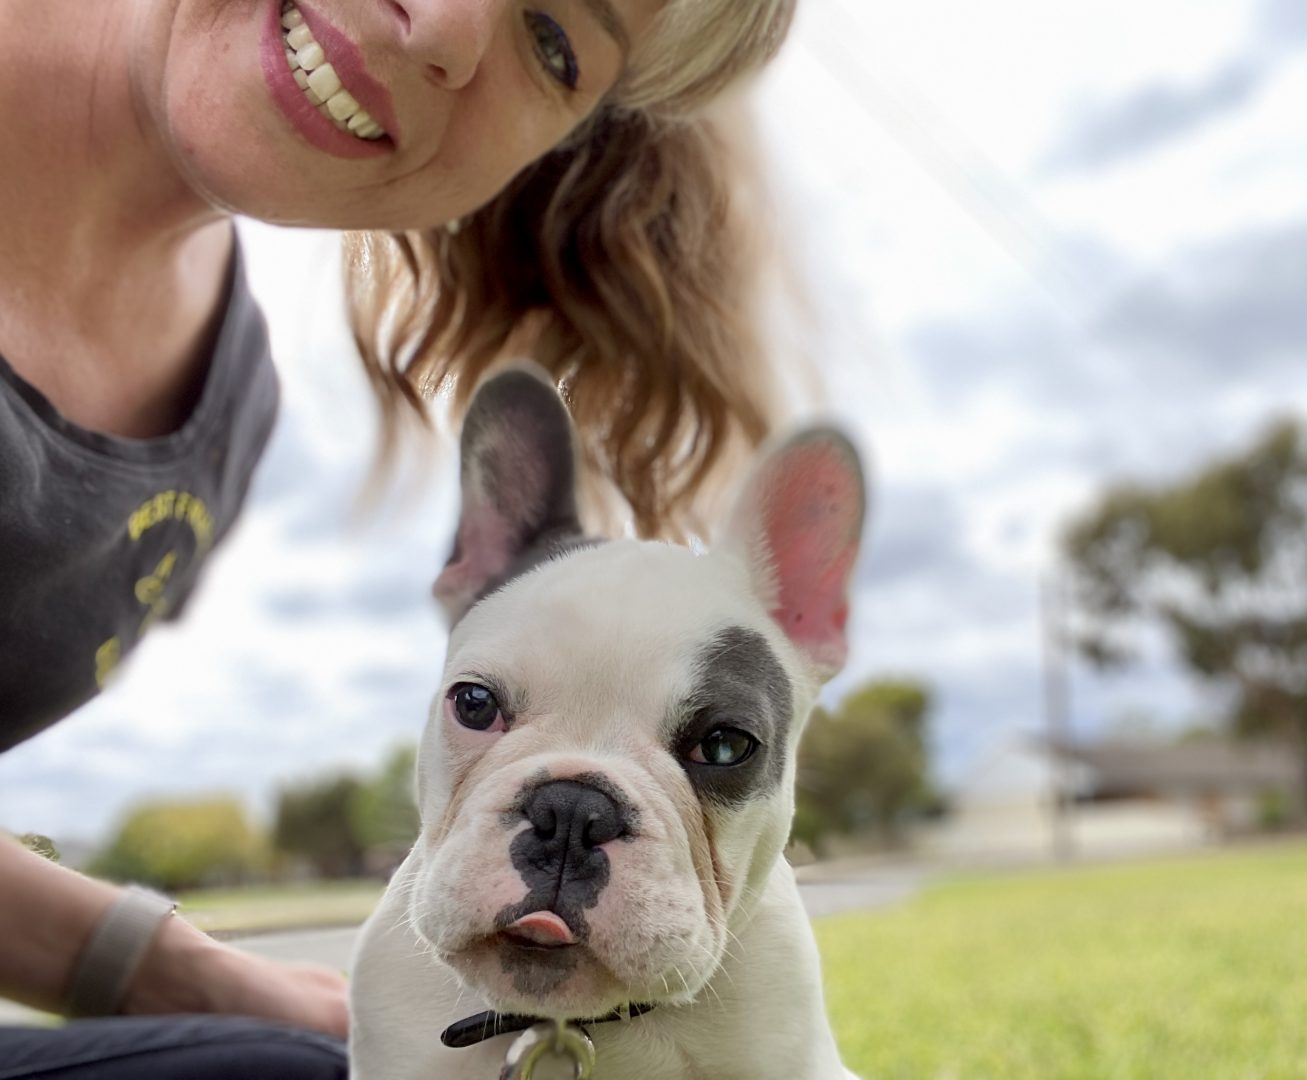 dog trainer, training with tamara ,dog training, puppy training, online dog training, dog walking, dog walker adelaide, trick training for dogs, how to train puppy, best friends, best friend dog training, french bulldog, frenchie